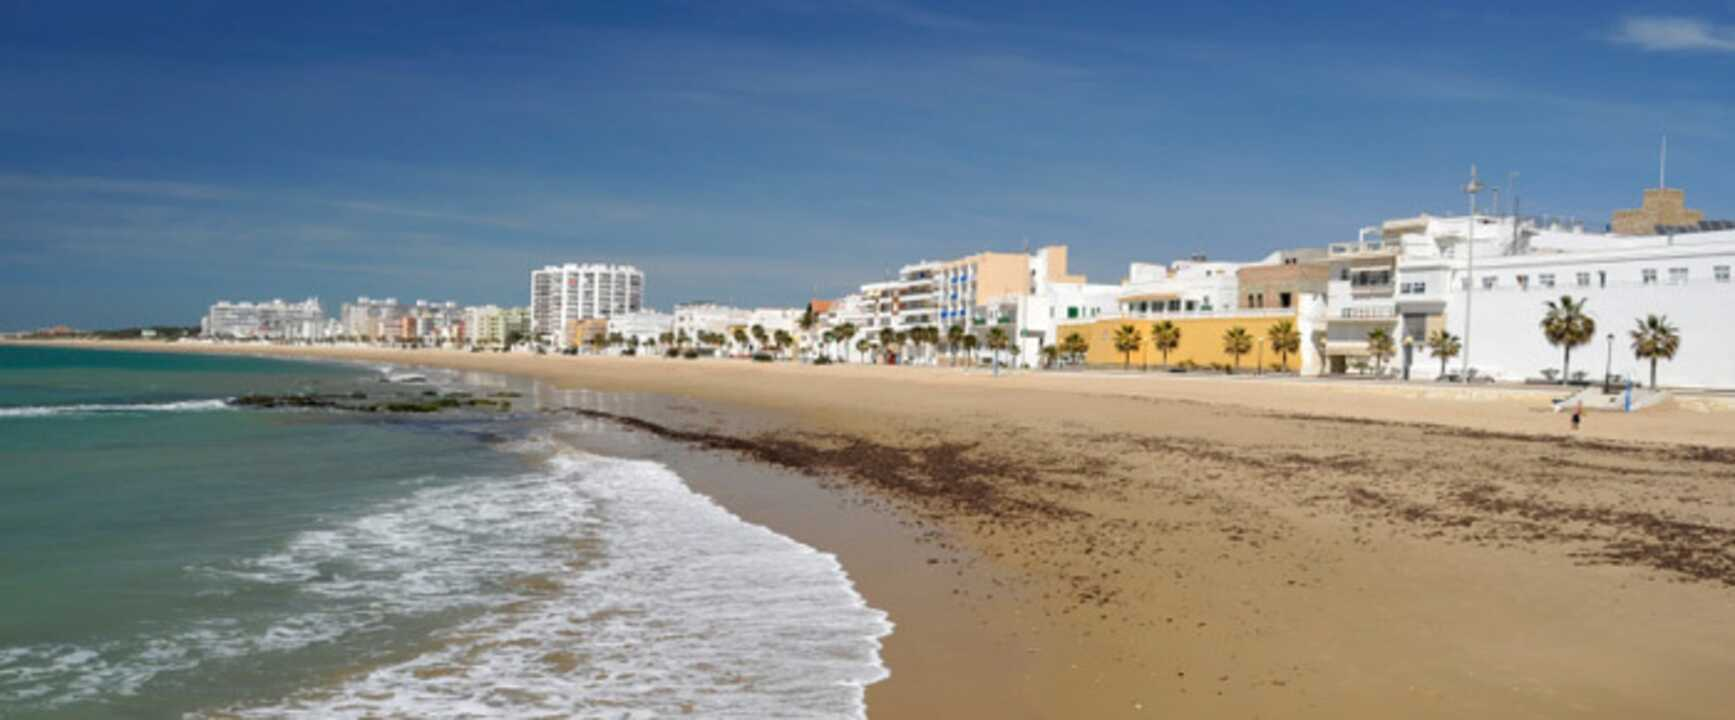 Cheap Holidays To Cambrils On The Beach